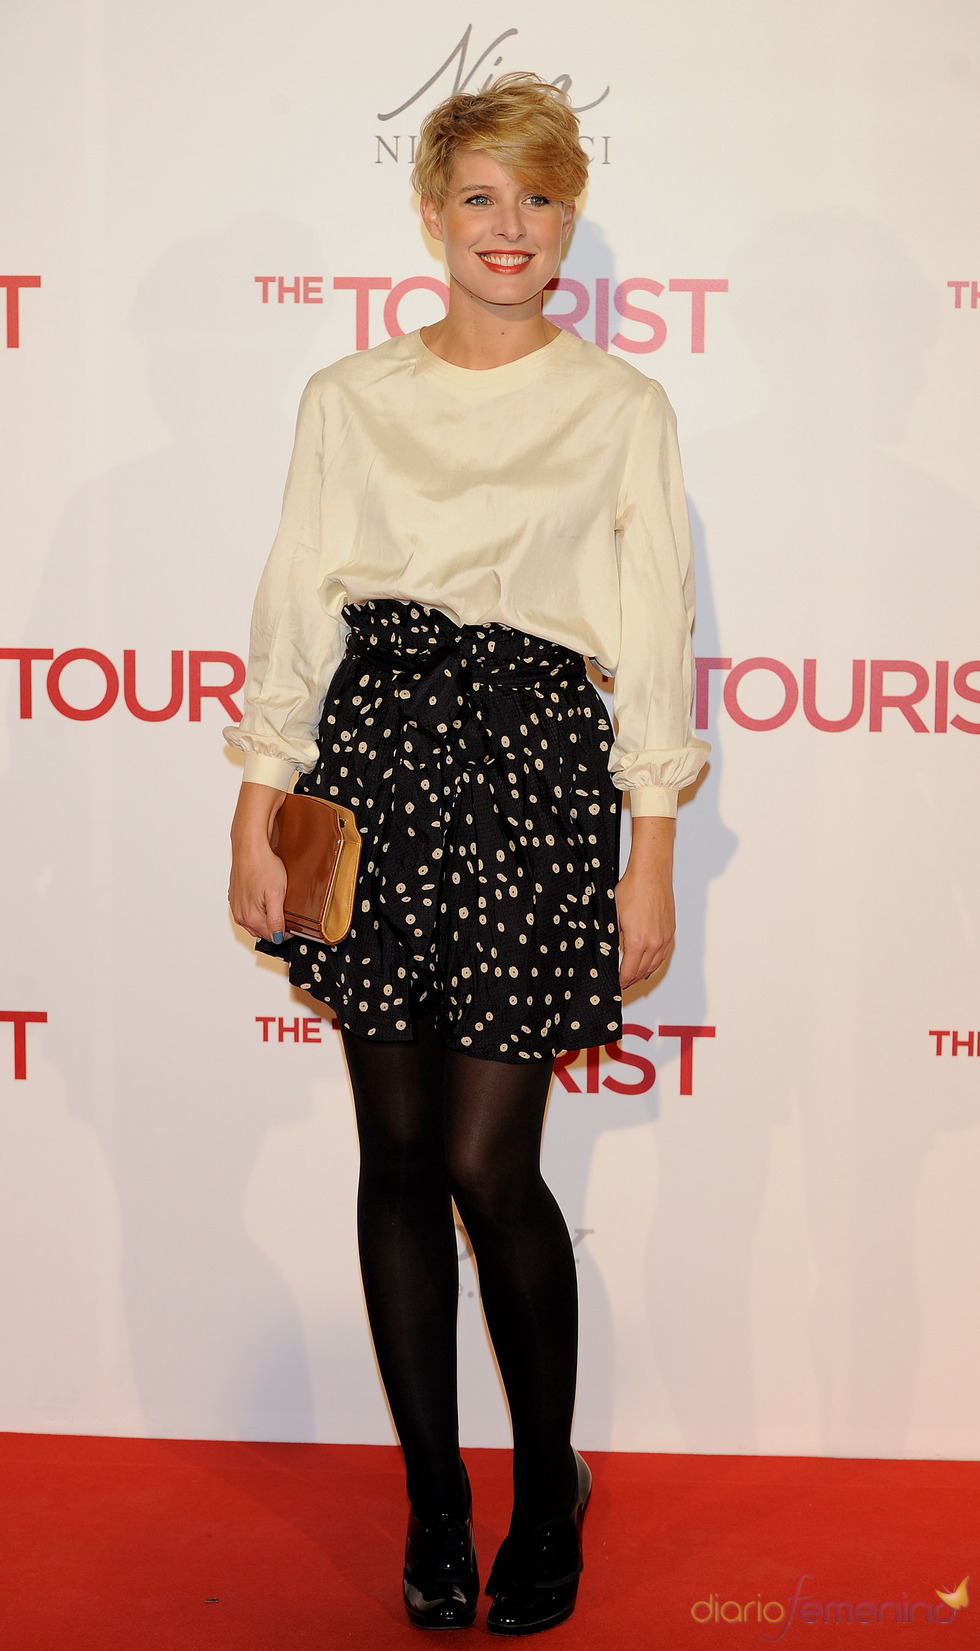 Tania Llasera en la premiere de 'The Tourist' en Madrid